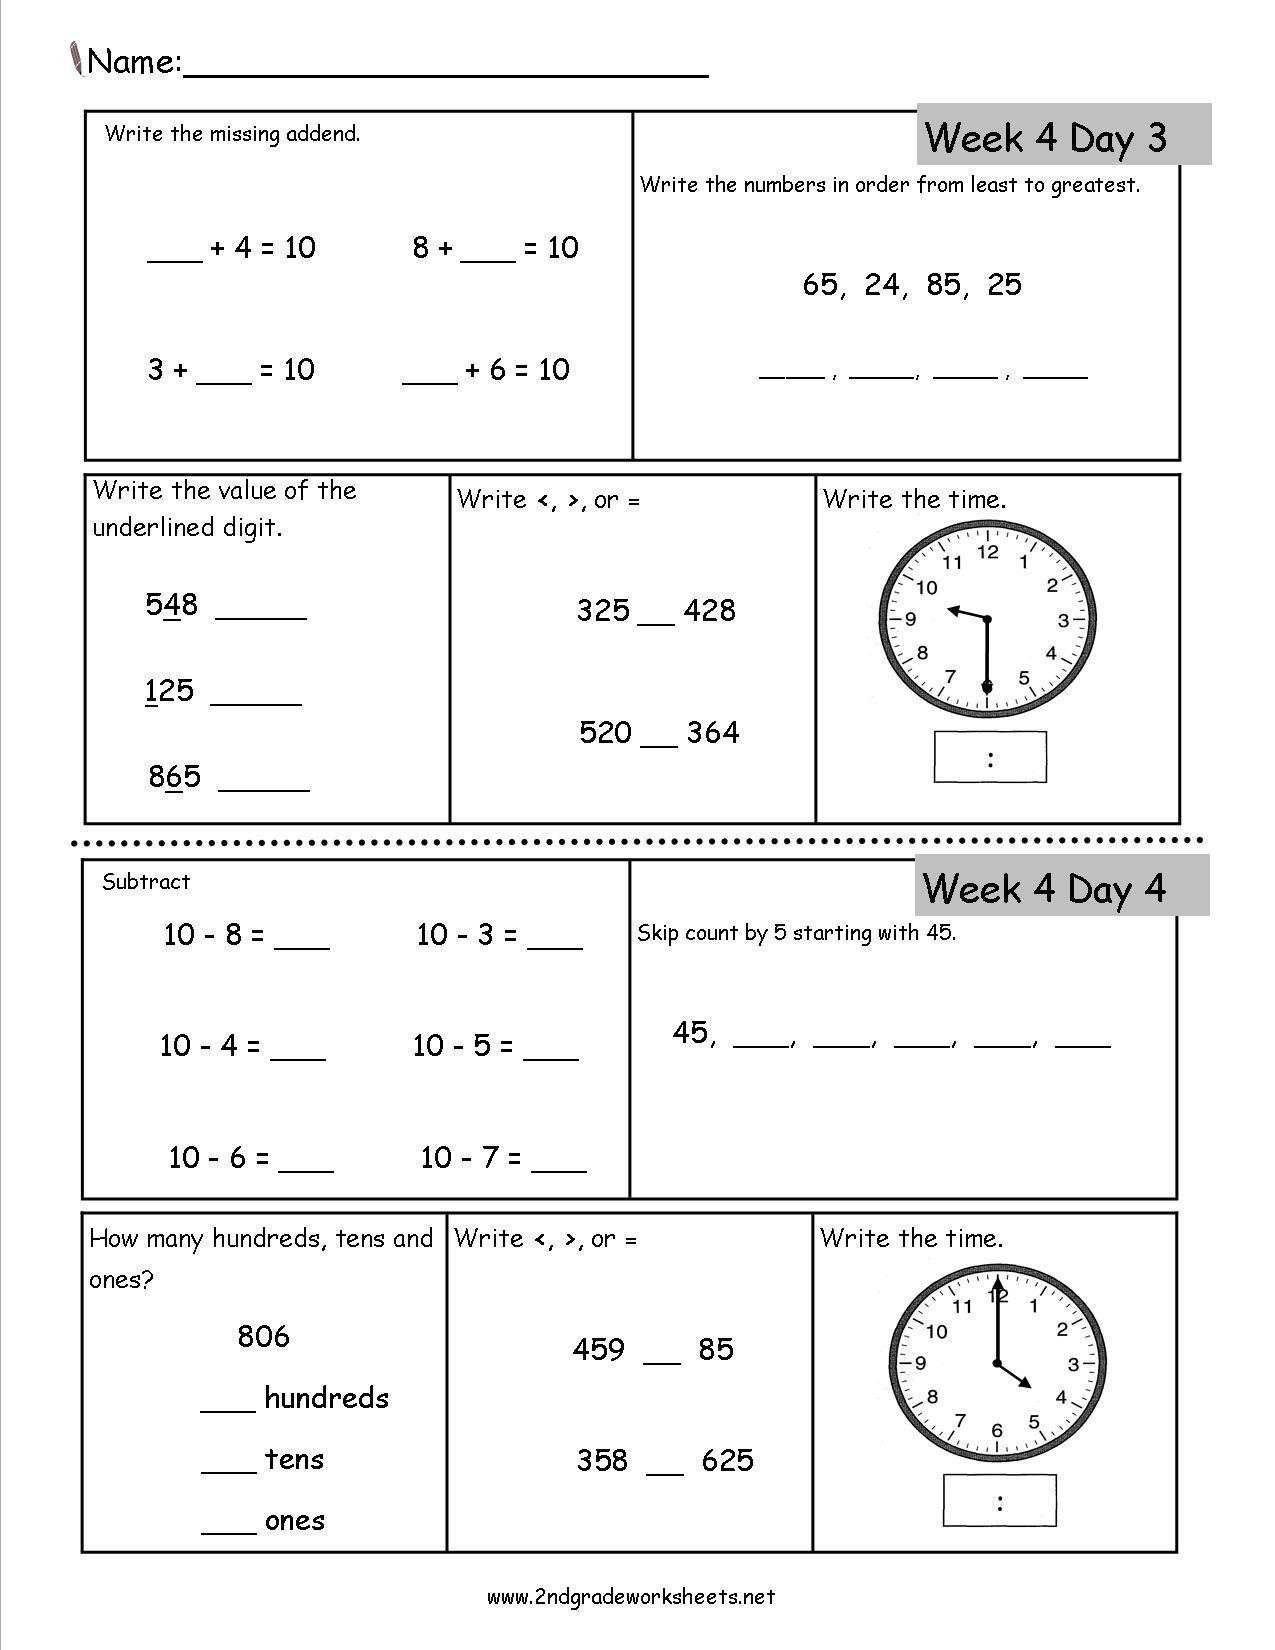 Ck Worksheets for 2nd Grade Free 2nd Grade Daily Math Worksheets Mon Core Second